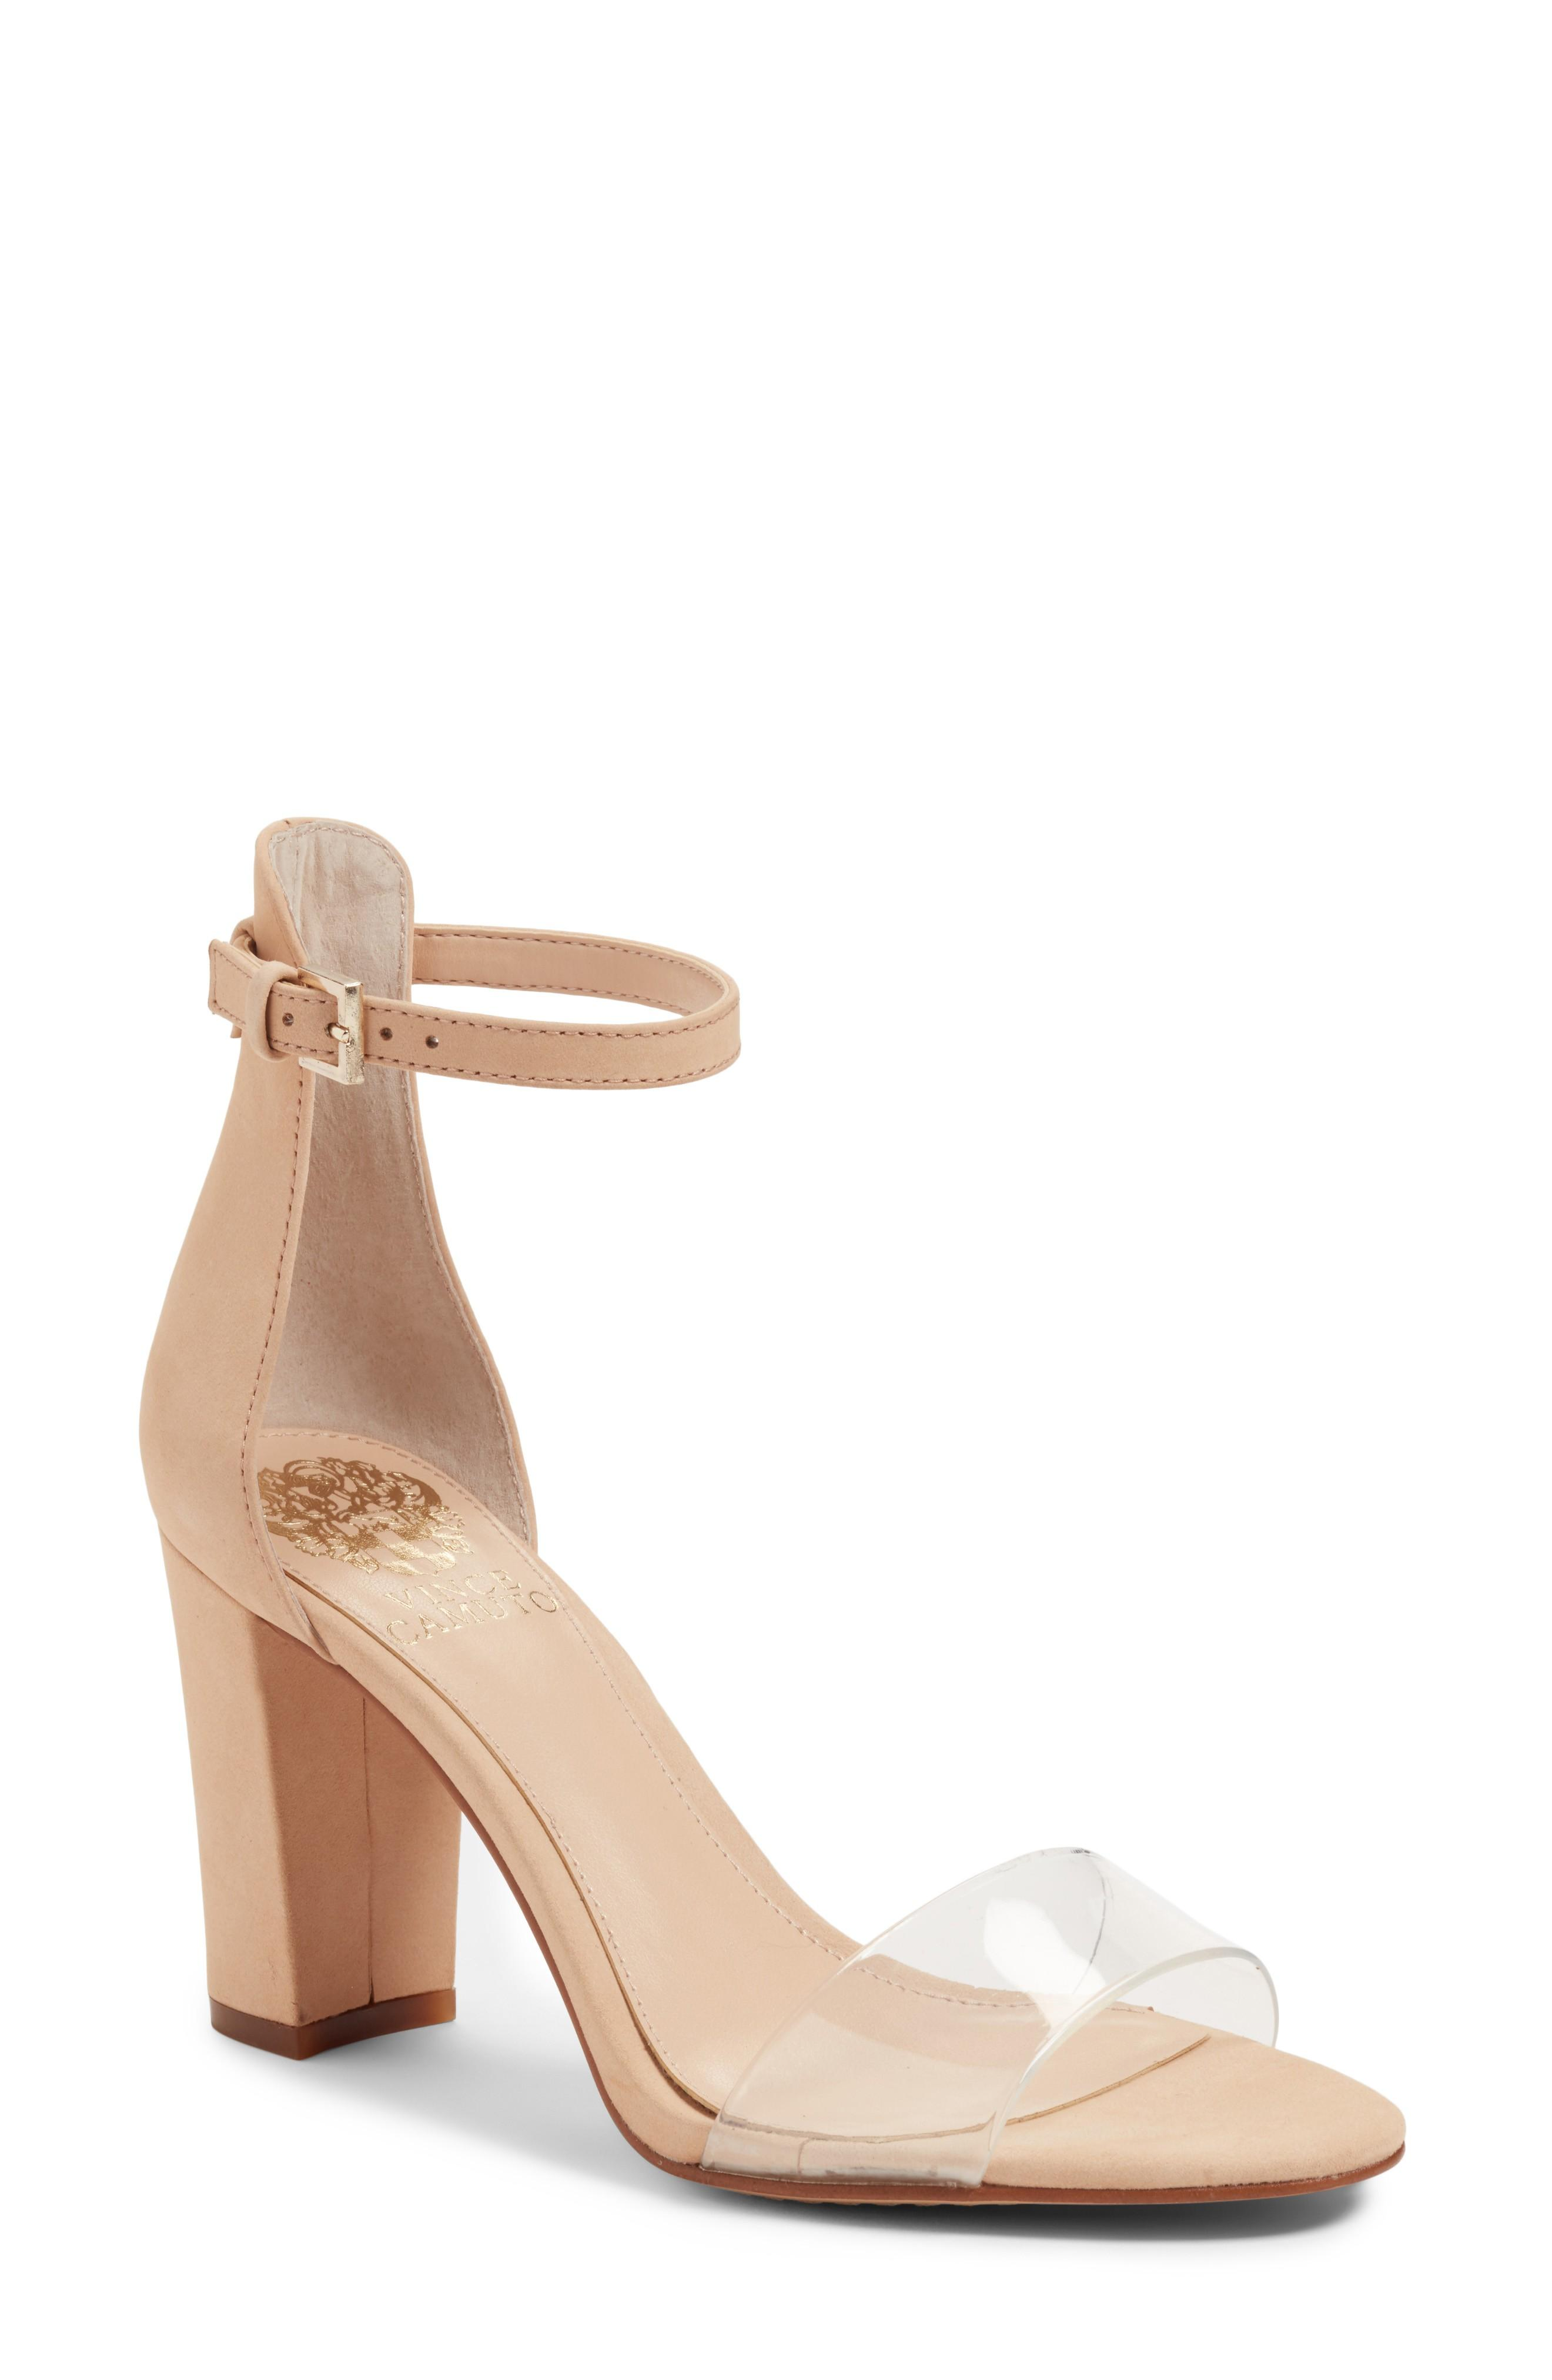 9de160be2262 Vince Camuto Corlina Ankle Strap Sandal In Beauty  Clear